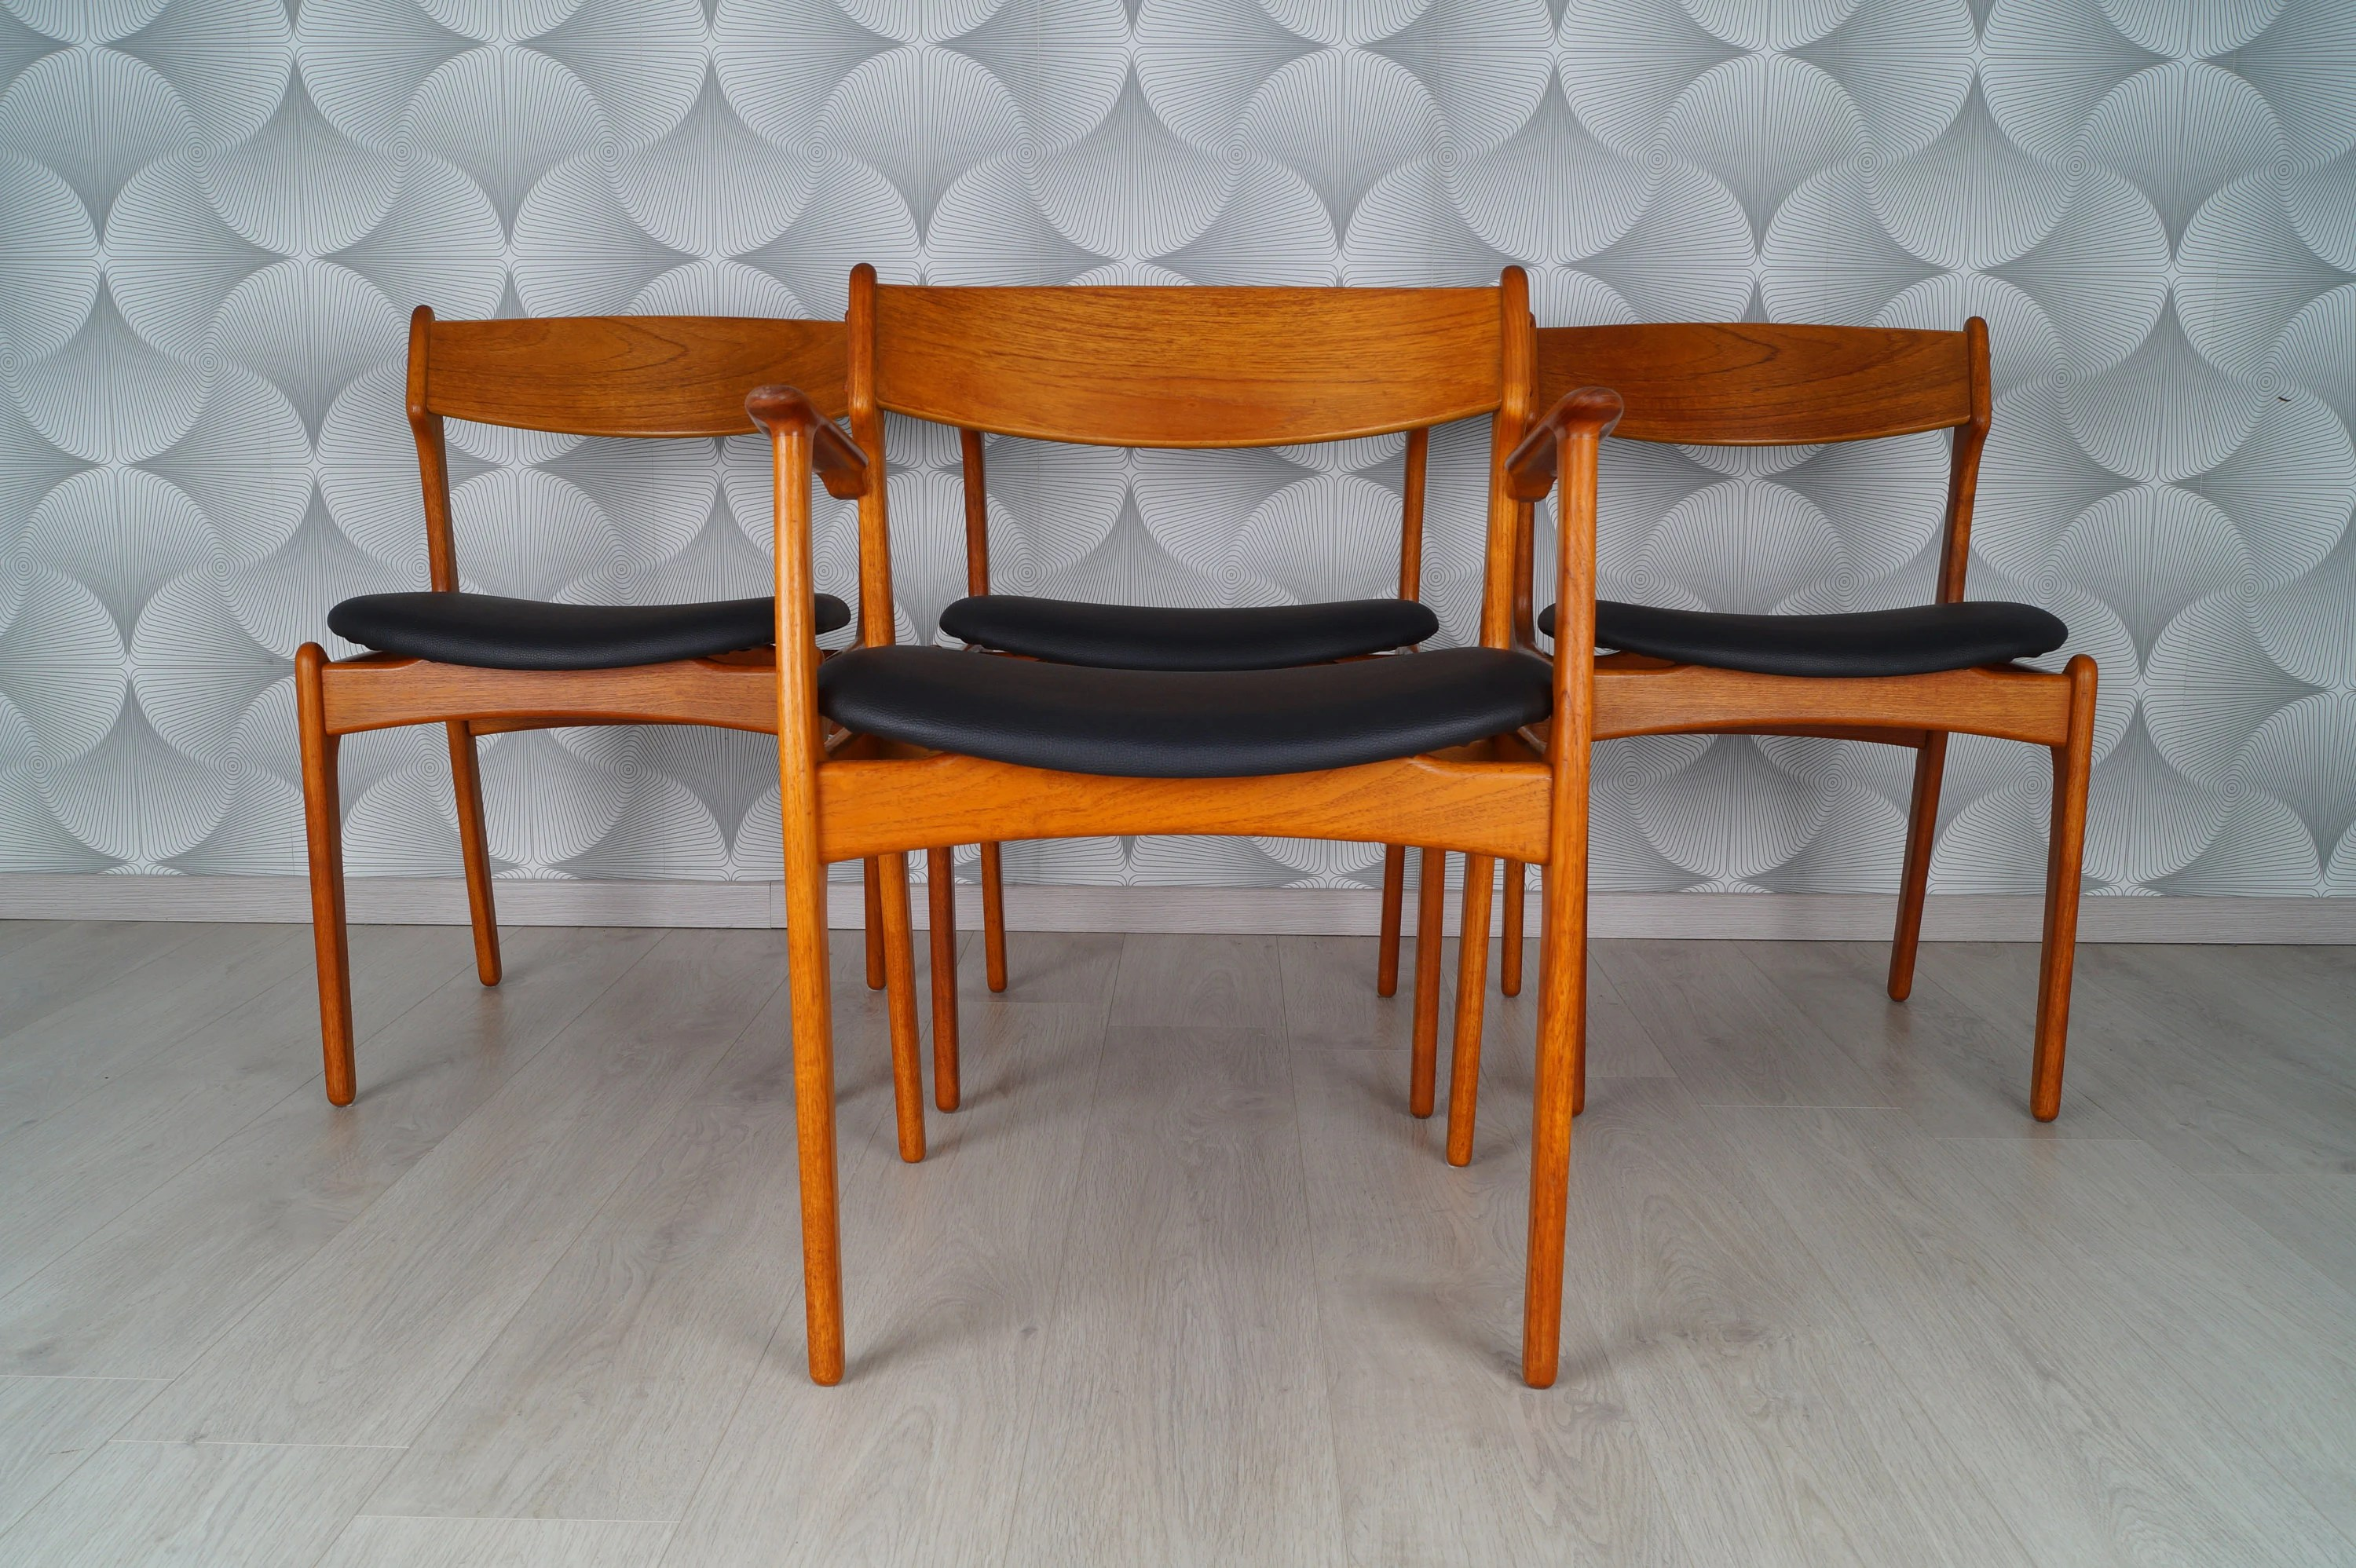 Teak Dining Room Chairs 4 Set Danish Teak Dining Room Chairs 50s 60s O D Møbler